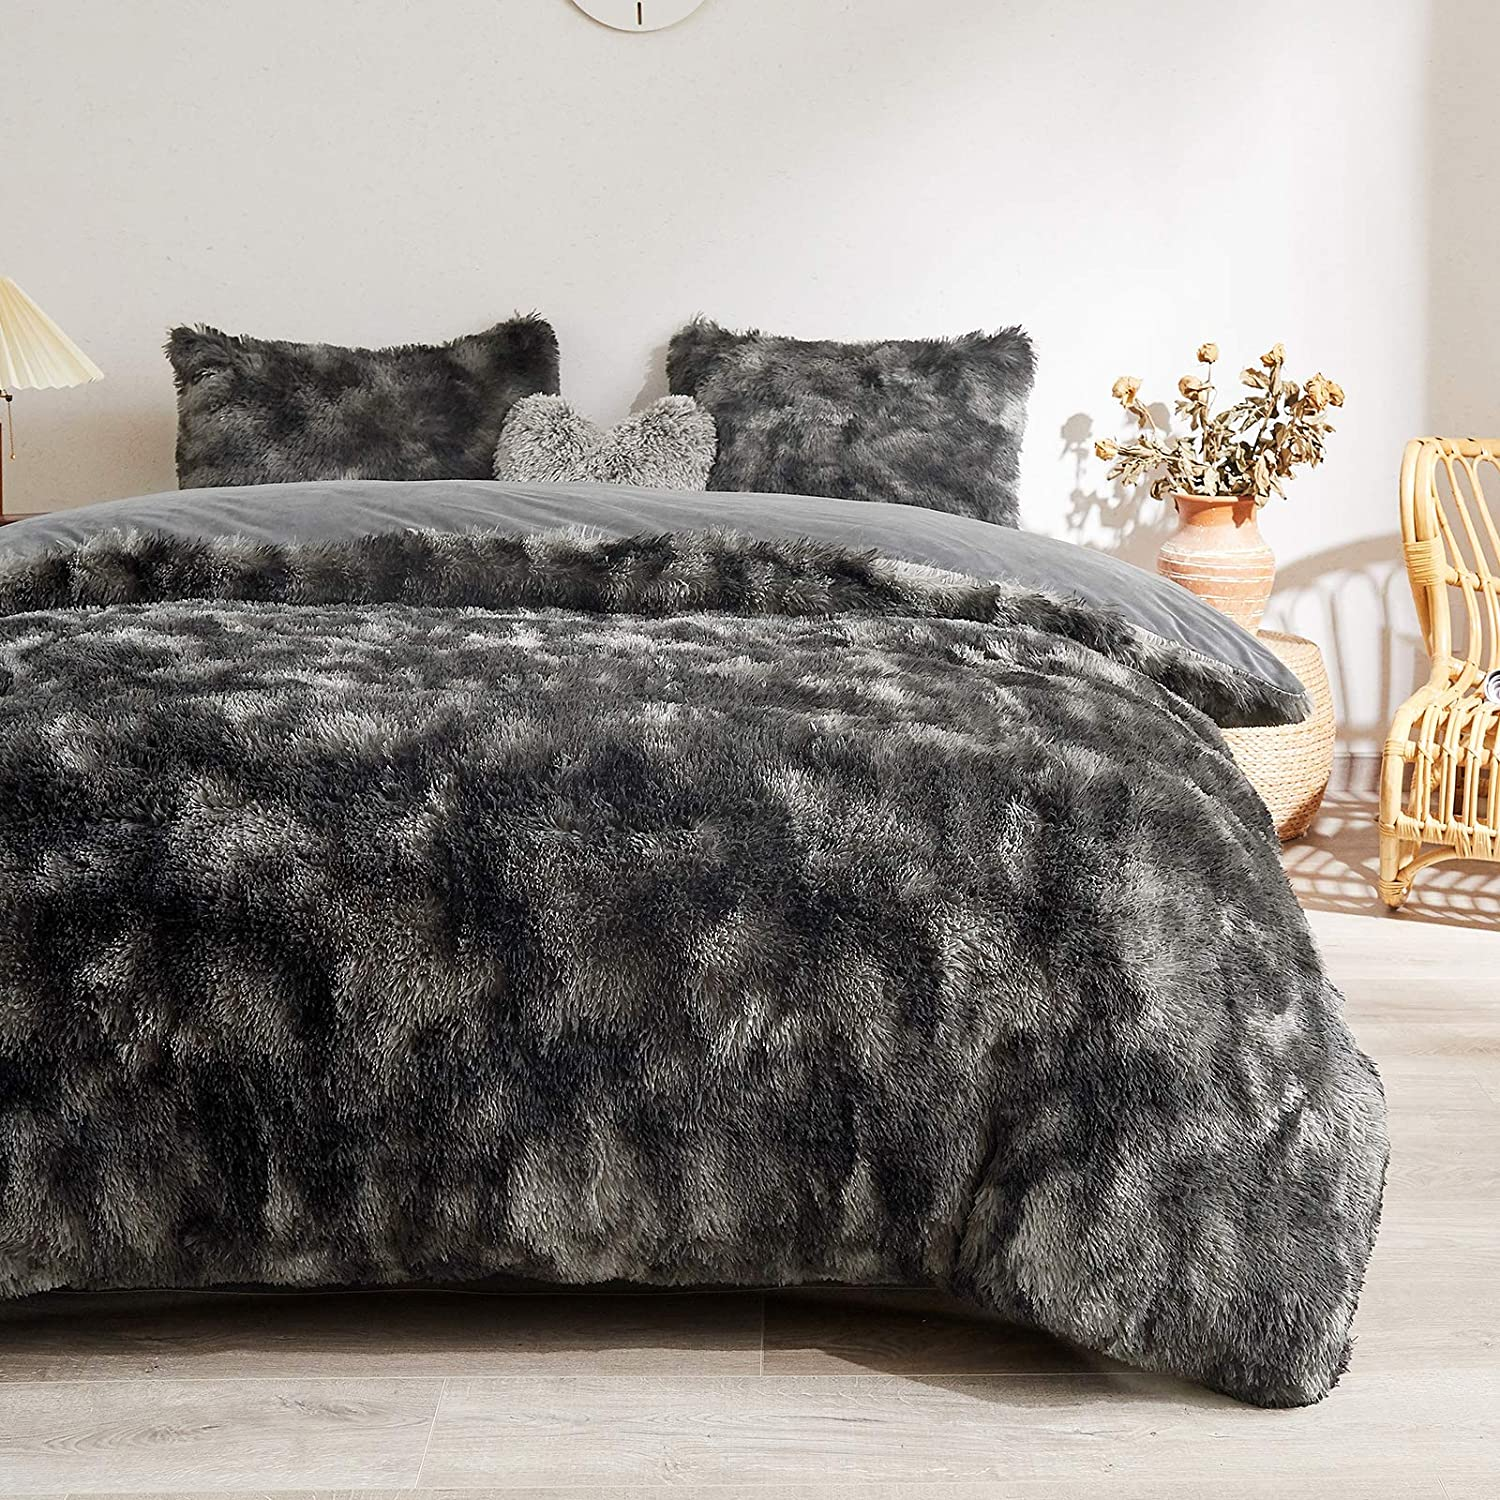 MEGO Fuzzy Ranking TOP11 Faux Fur Ranking TOP3 Duvet Cover Shaggy Marble Print Set -